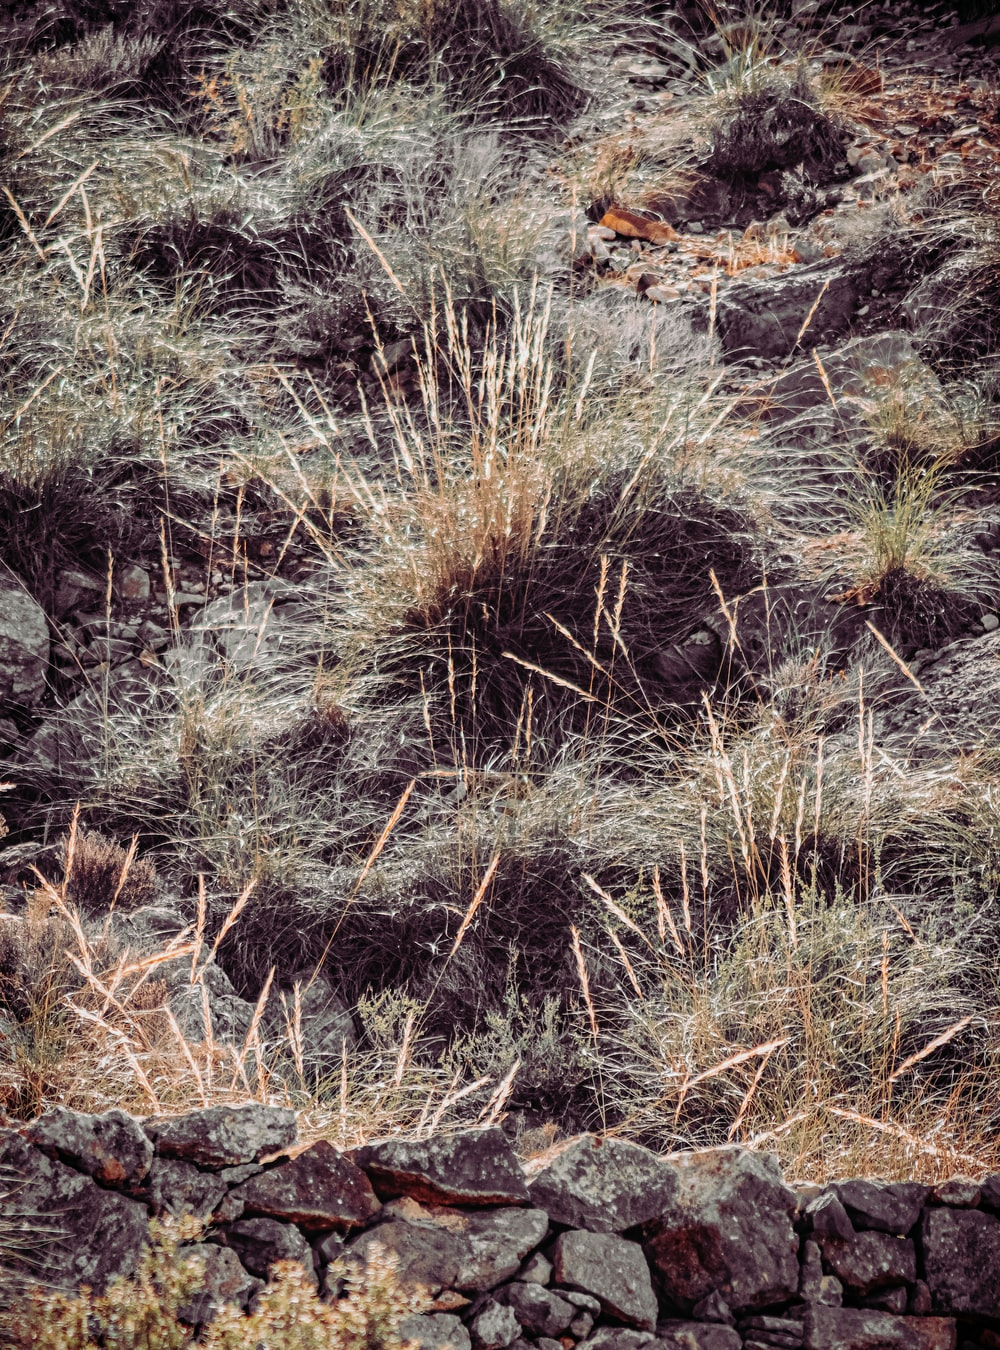 brown grass on brown and gray rocky ground